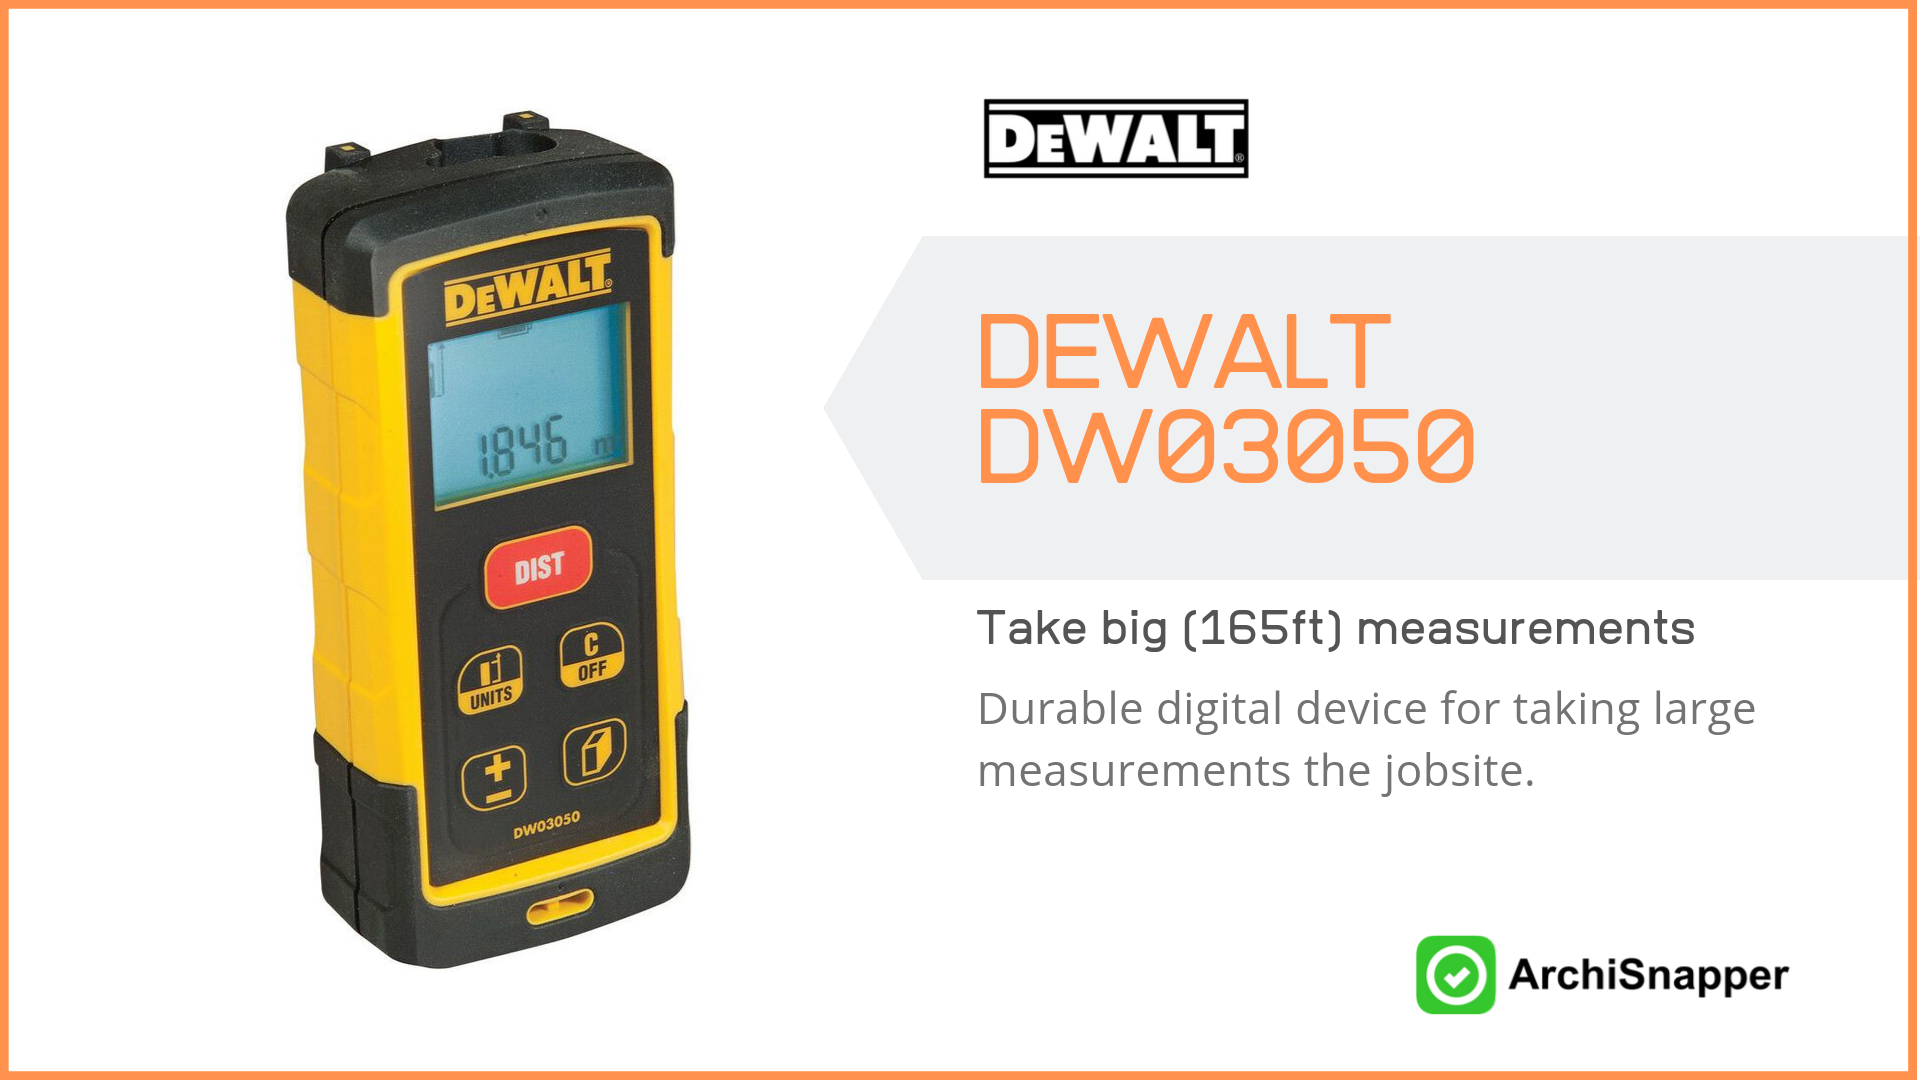 The DEWALT DW03050 | List of the 14 must-have tech tools and accessories ideal for architects